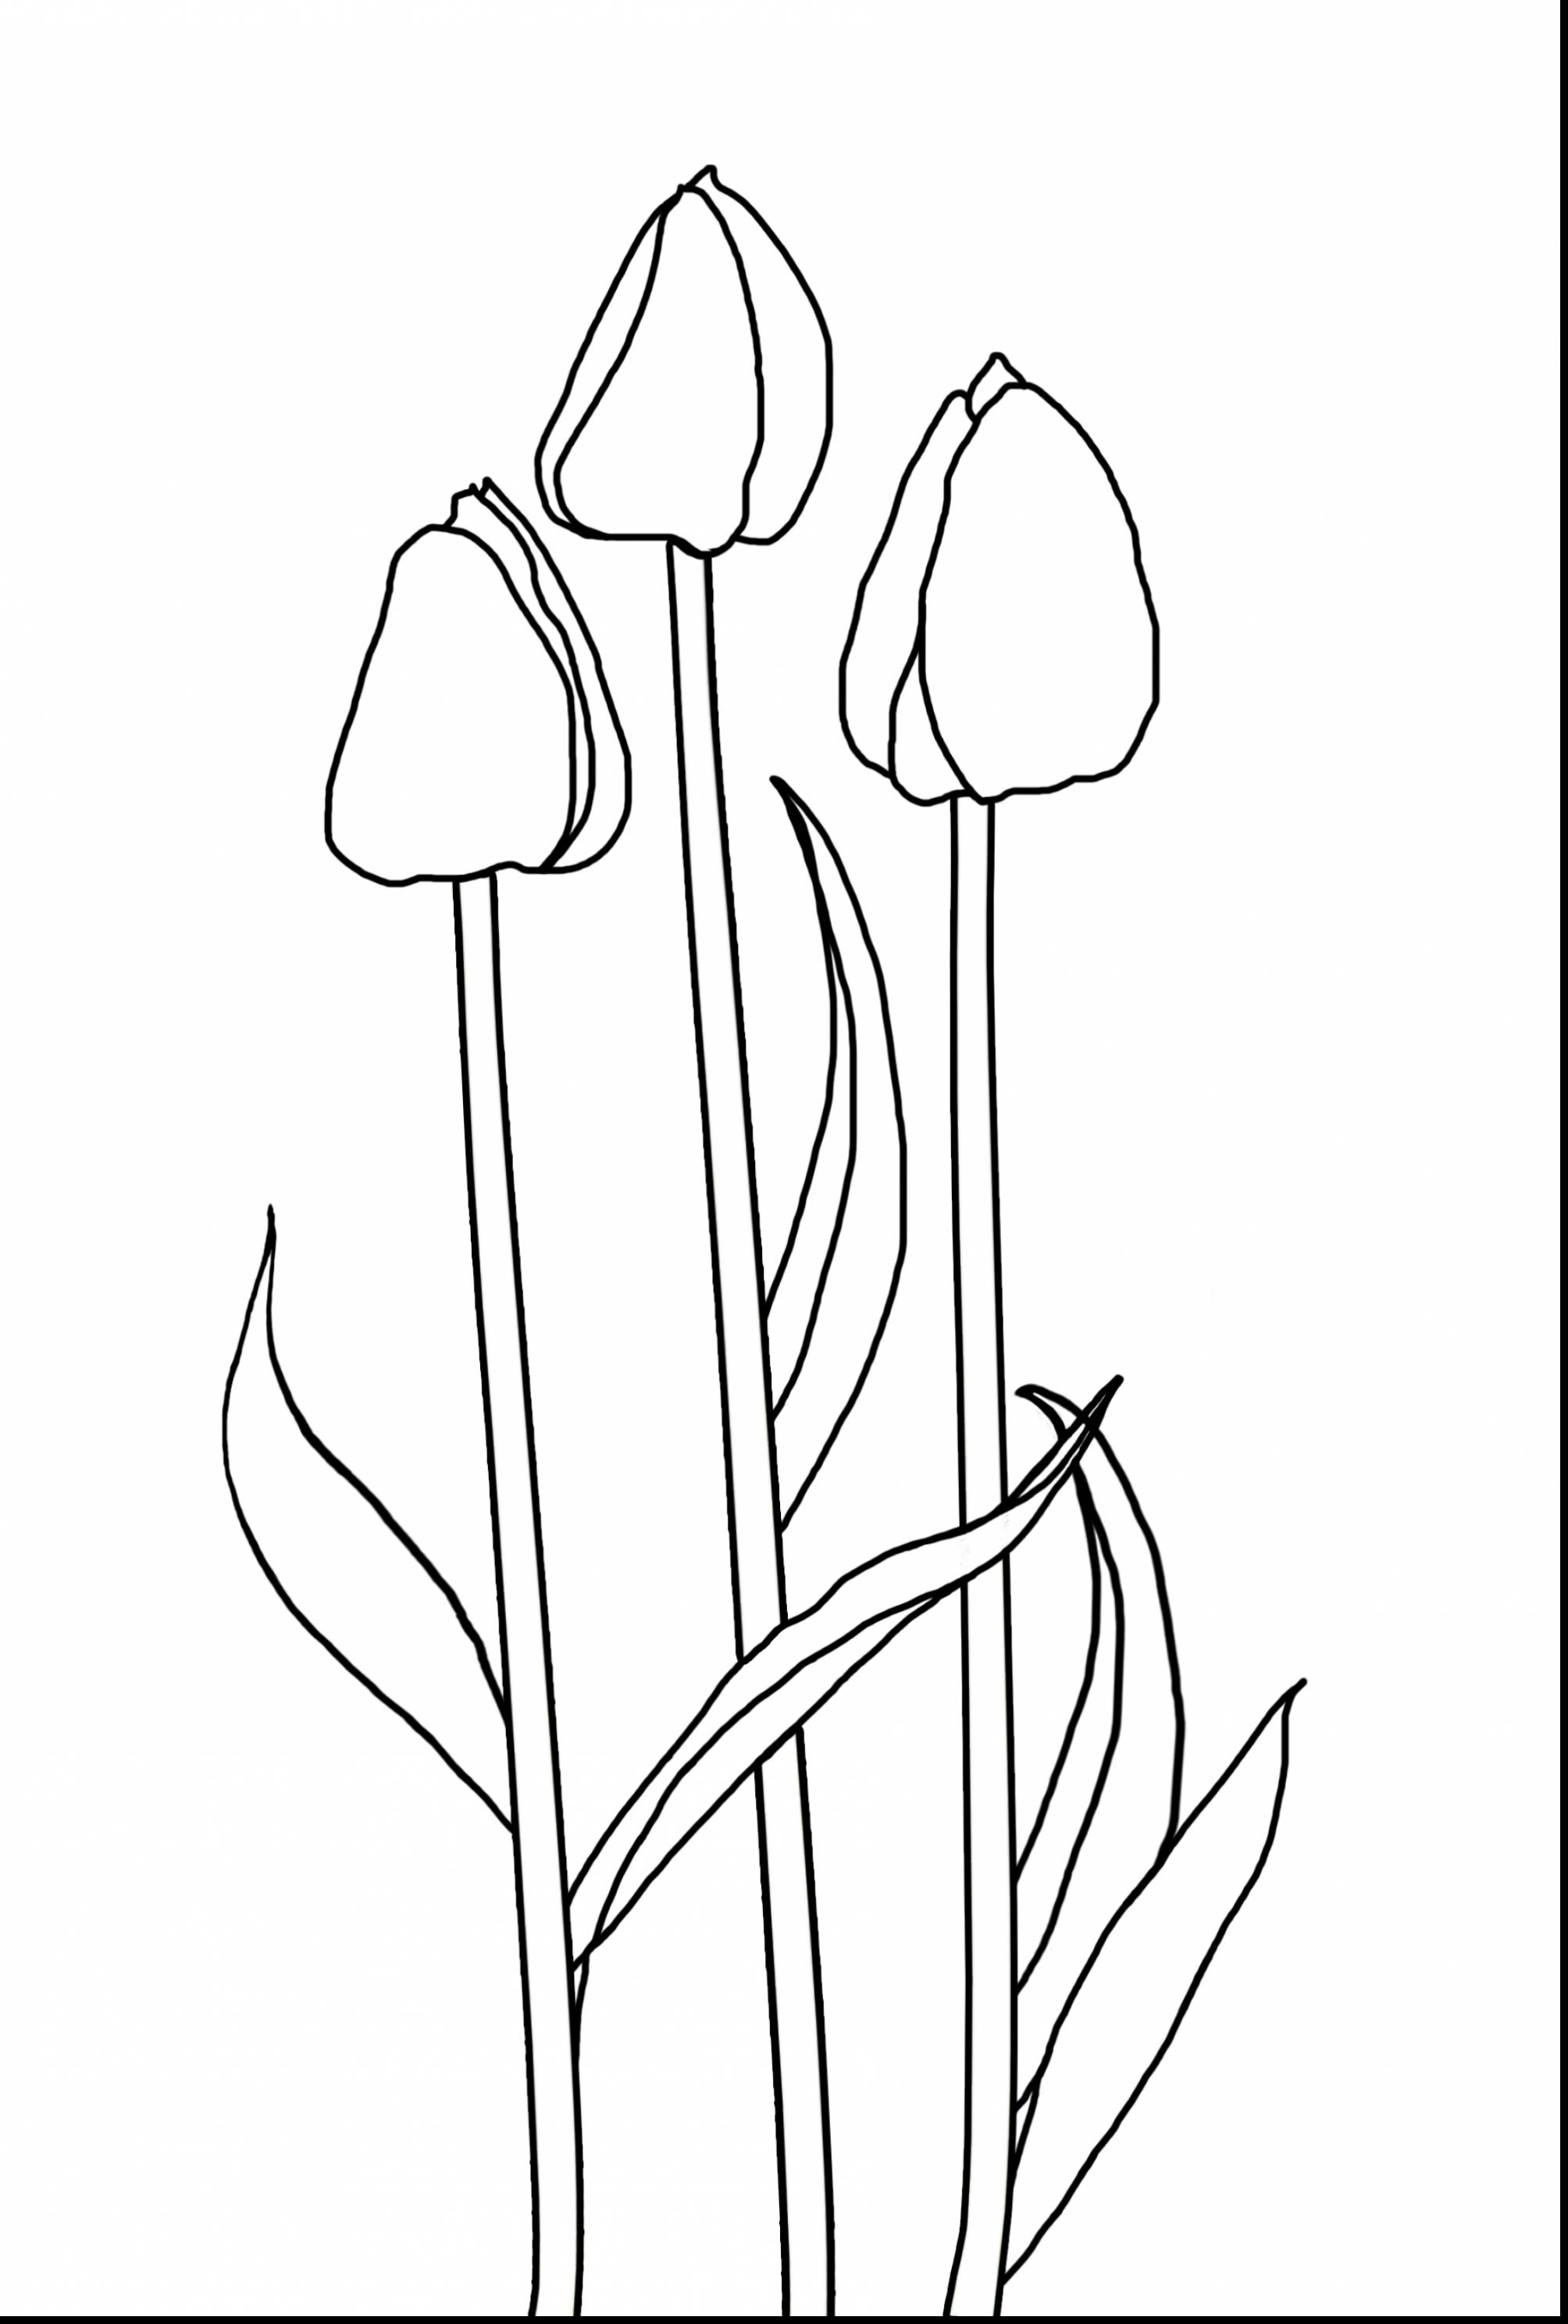 tulip colouring printable tulip coloring pages for kids cool2bkids colouring tulip